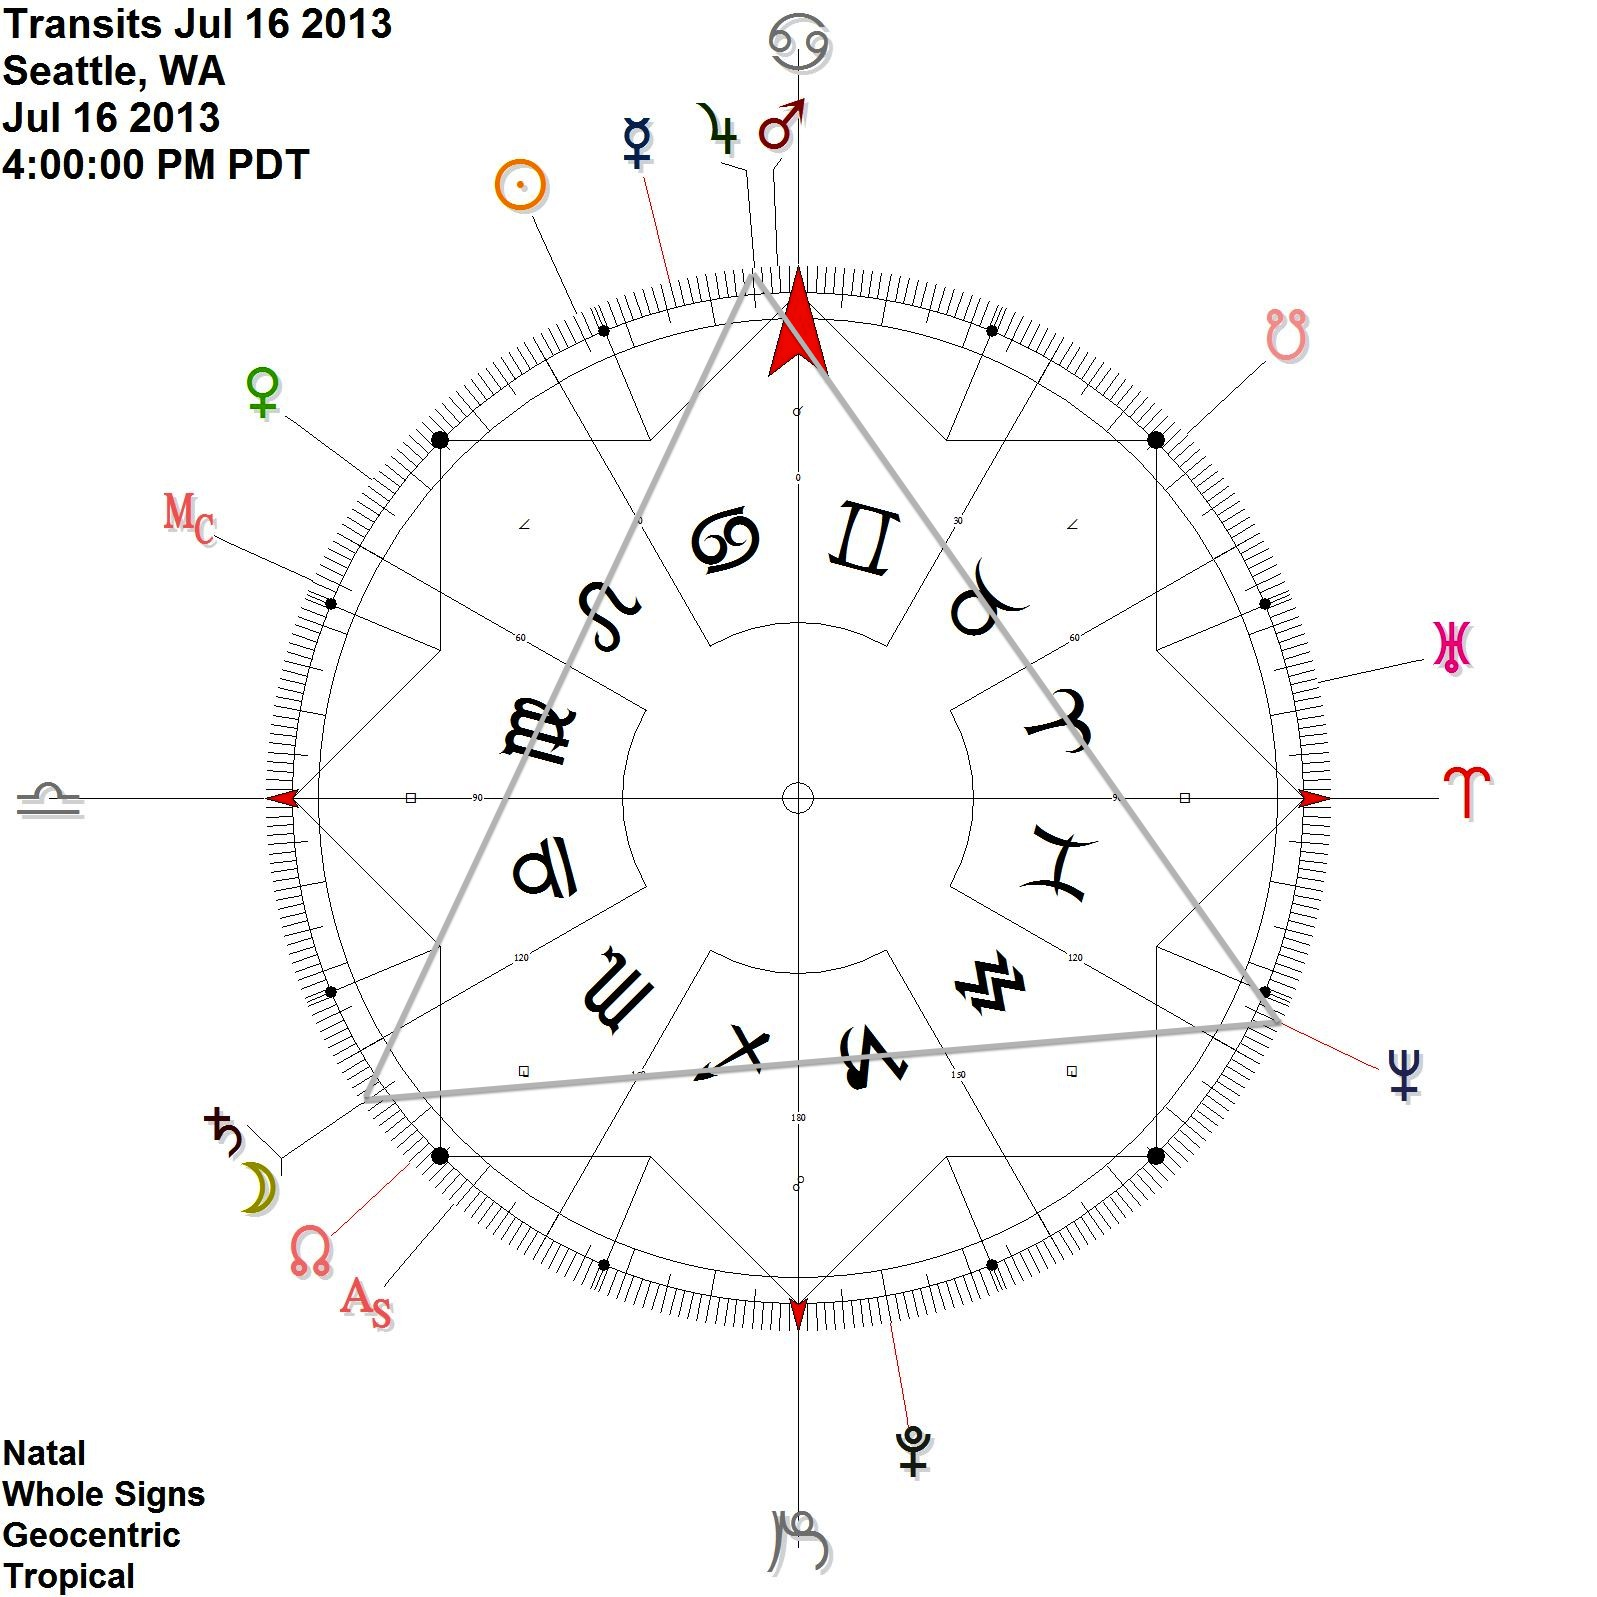 Moon joins Saturn @ 4'52 Scorpio - activating the grand trine configuration between Jupiter, Saturn, and Neptune.